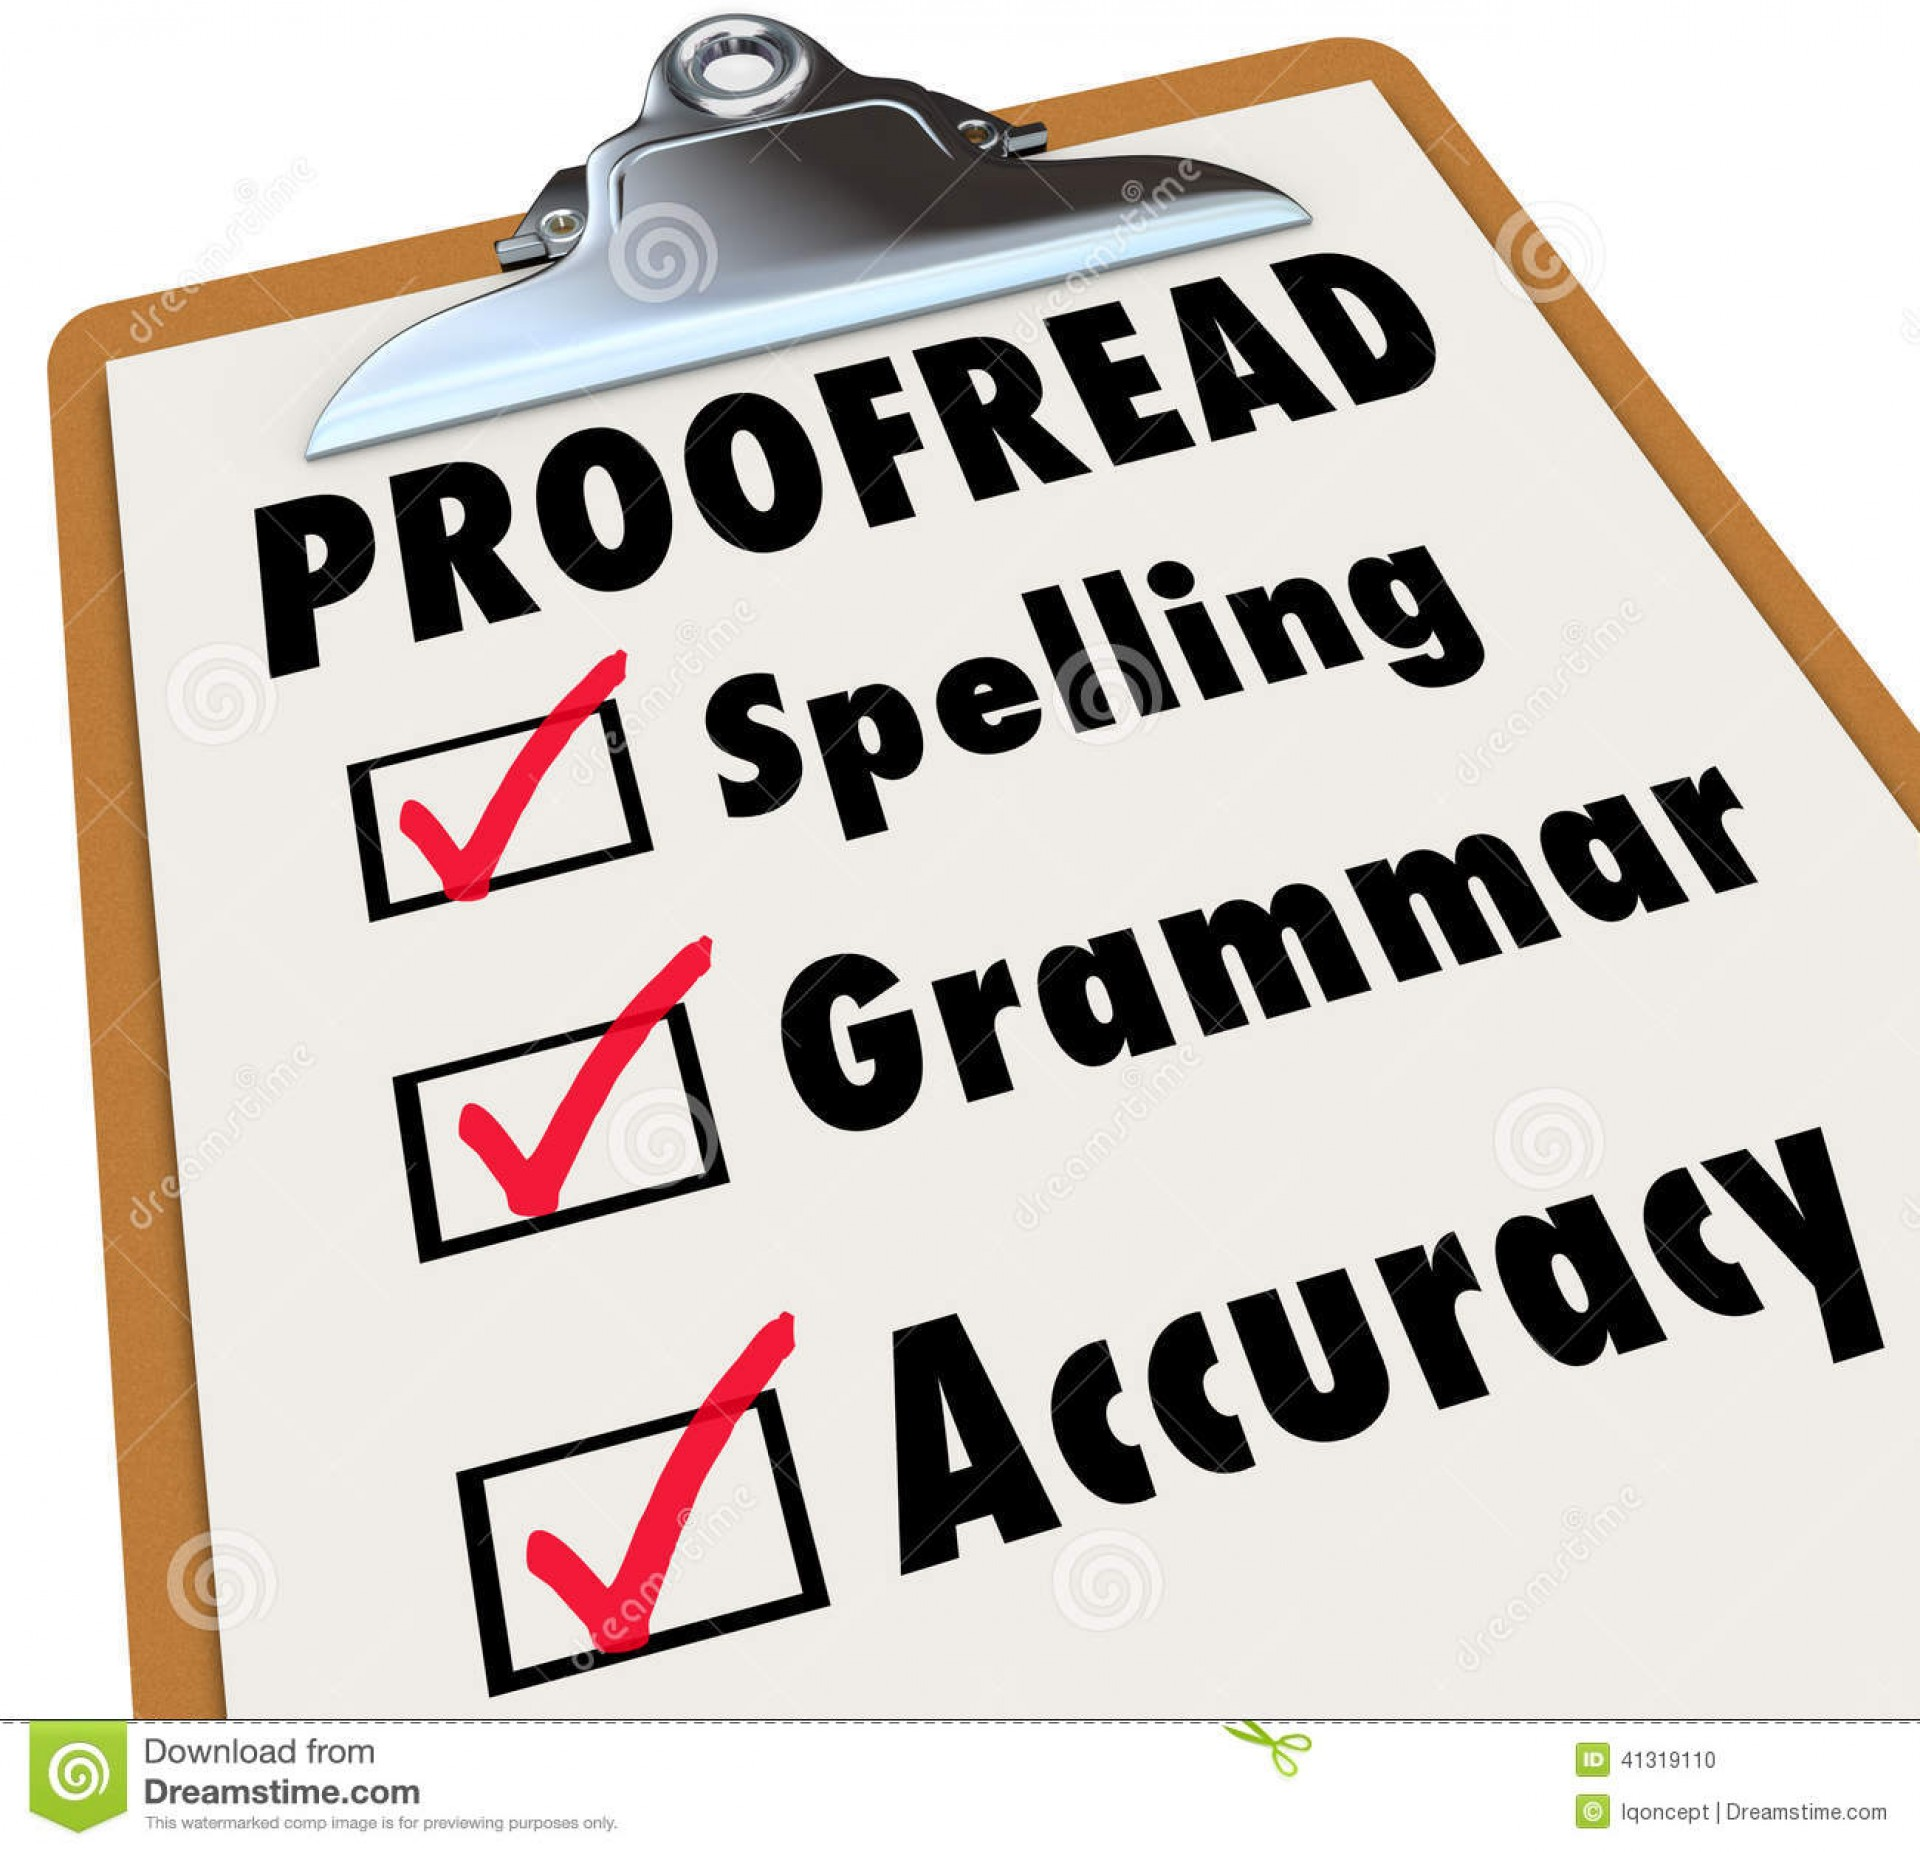 007 Proofread Clipboard Checklist Spelling Grammar Accuracy Checked Boxes Next To Words As Things Editor Reviews Essay Example Proofreader Incredible Free Online 1920